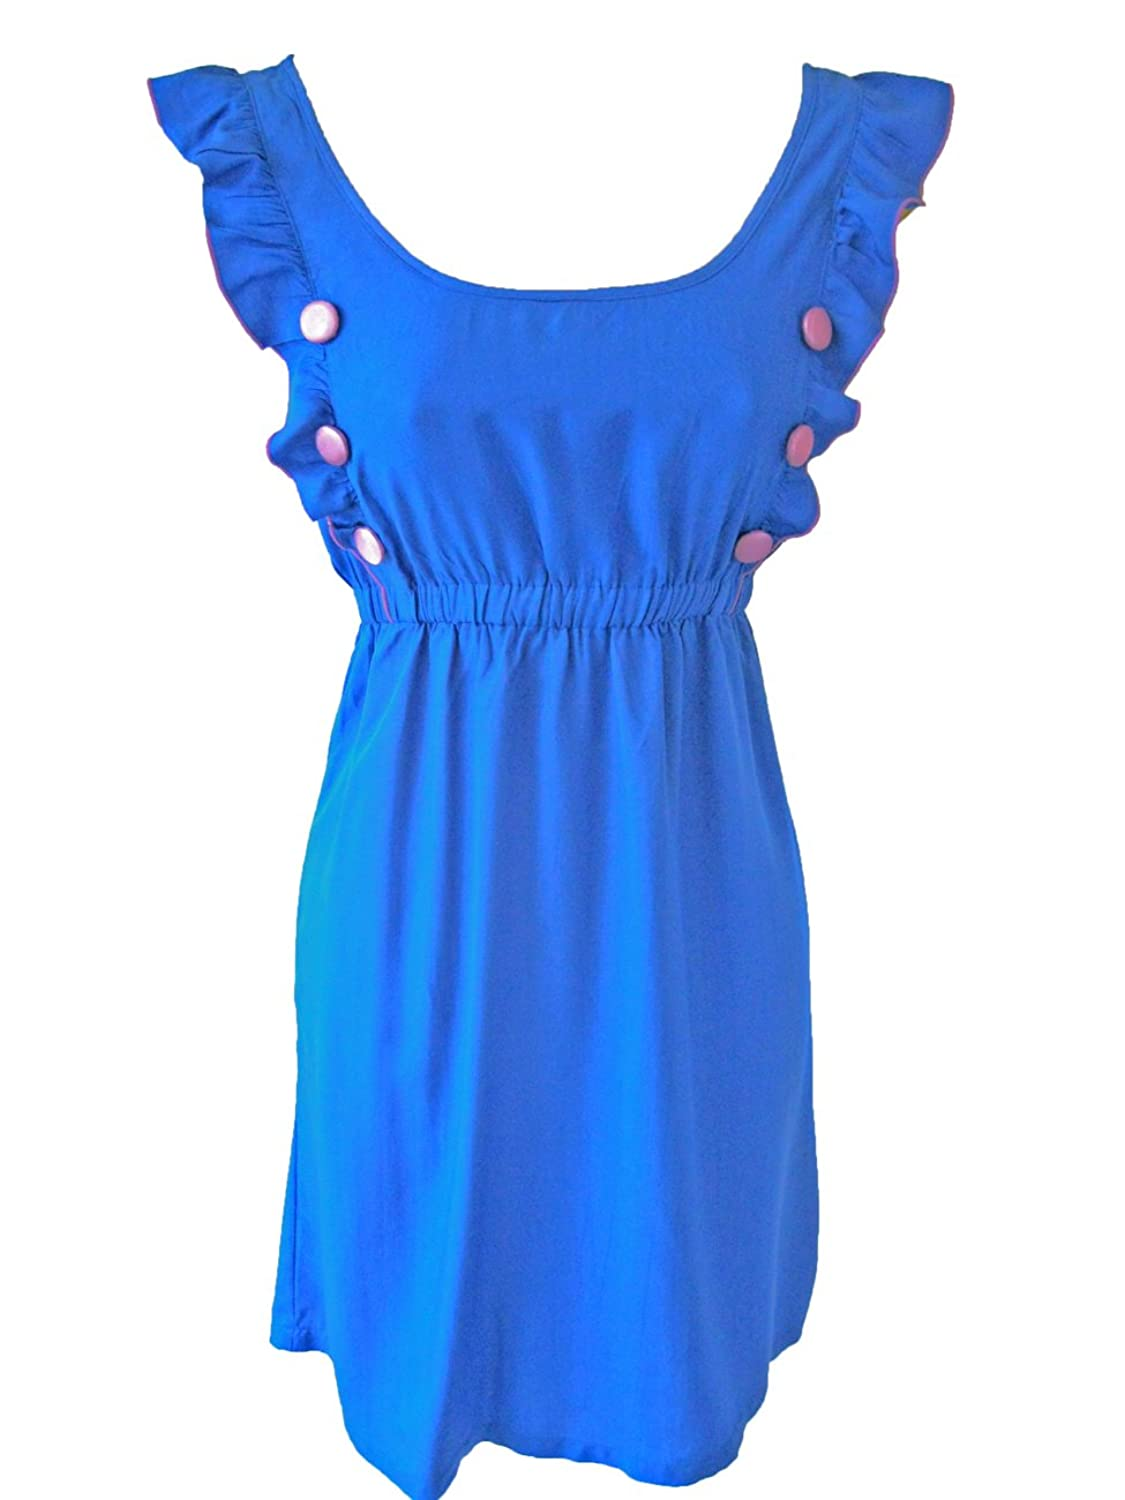 Sugarhill Boutique Birdie Dress Blue XS / UK 8